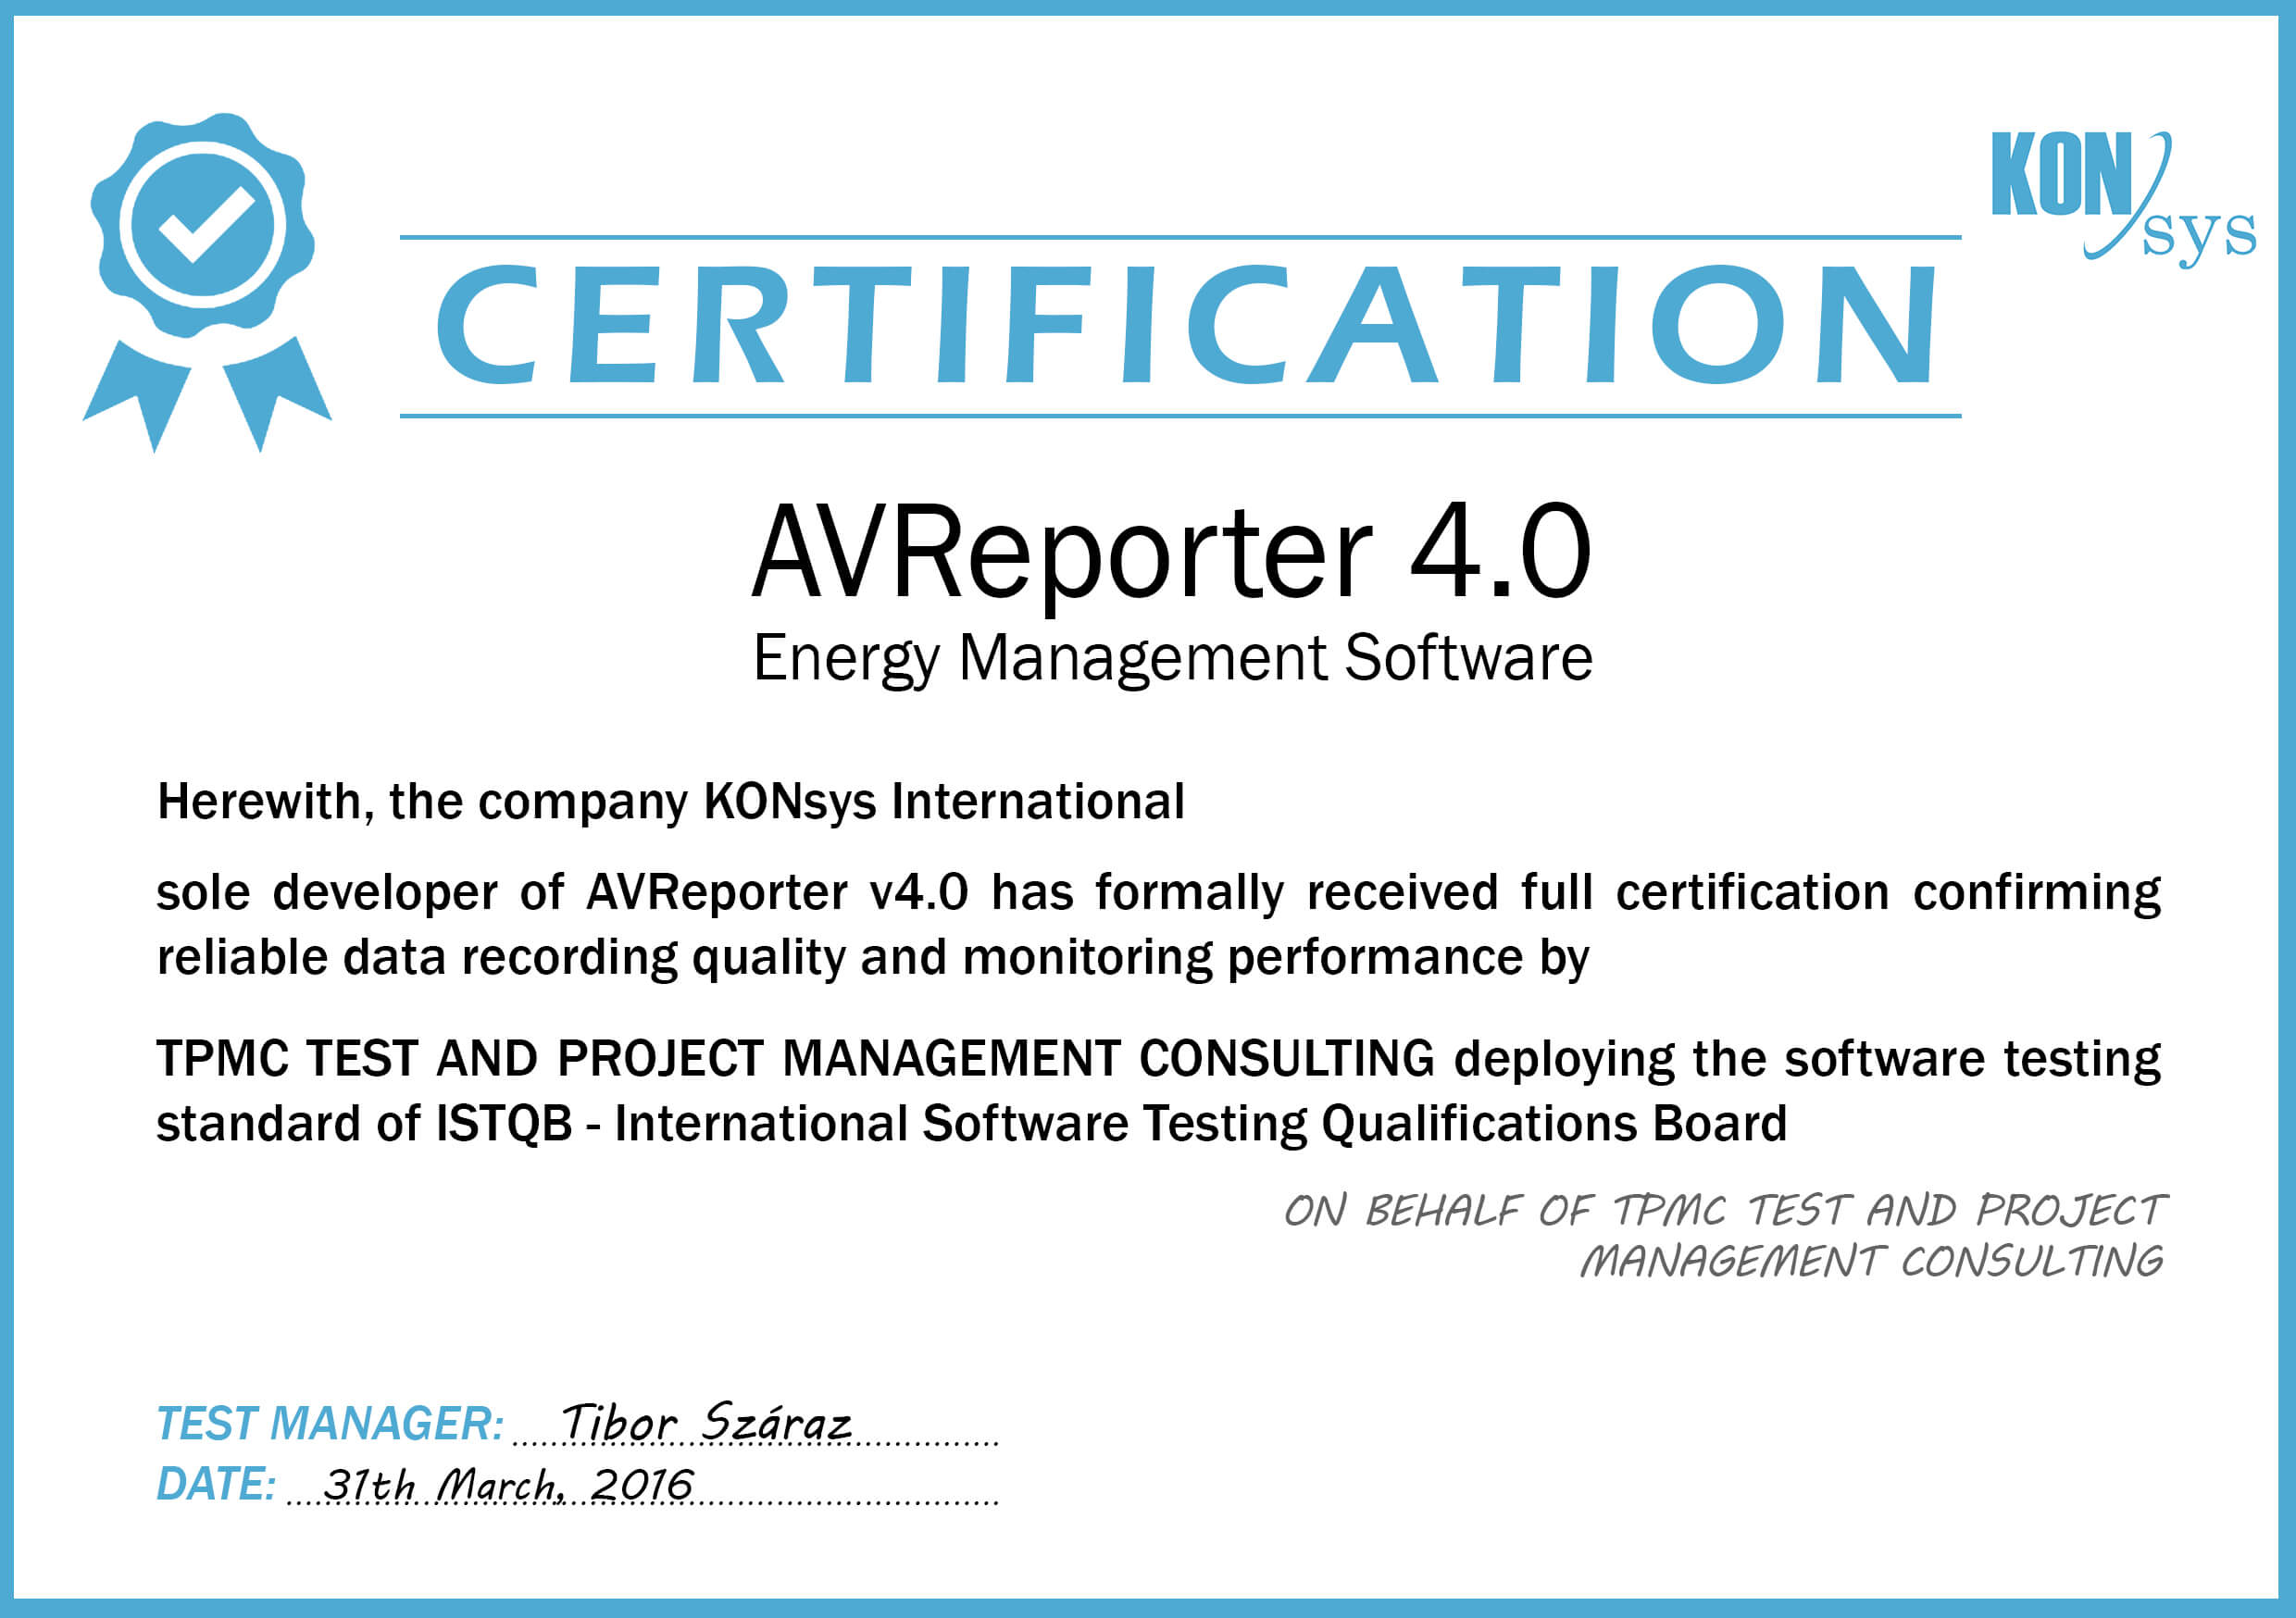 About us avreporter energy management software this is to confirm the certification of avreporter 40 energy management software developed by konsys international hq hungarygyr has been tested by 1betcityfo Choice Image